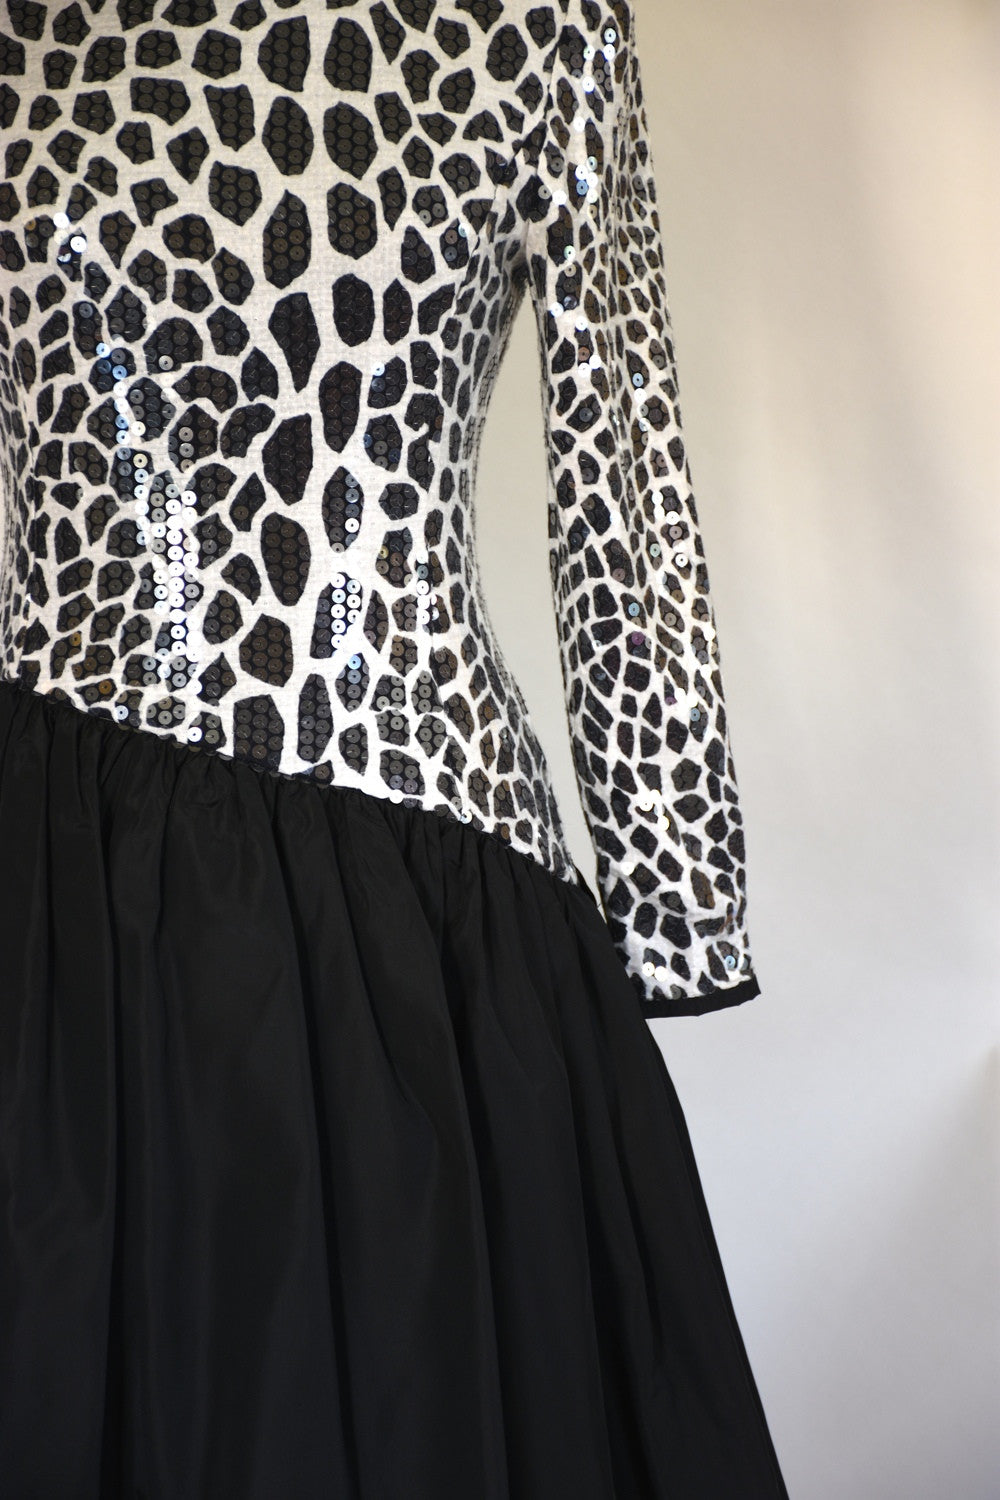 80s glam party dress